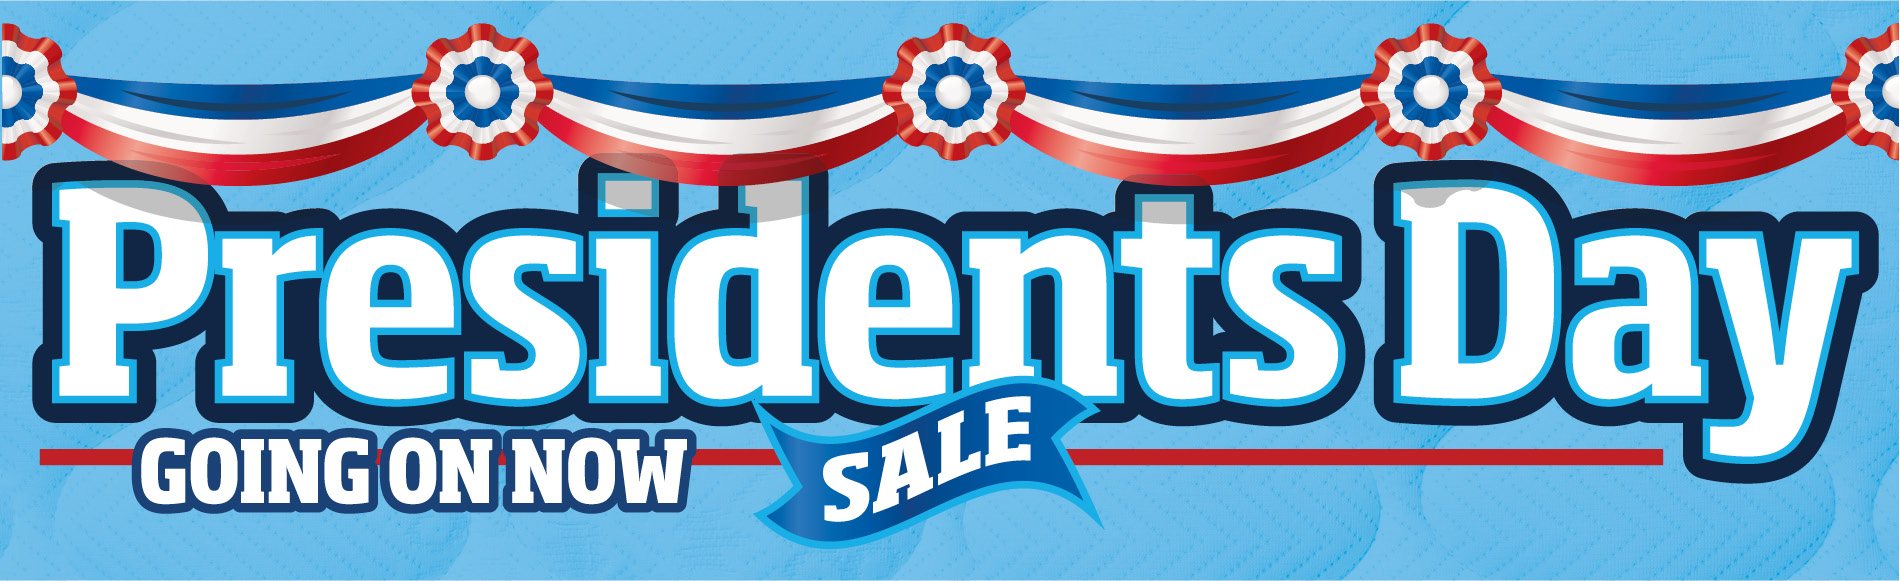 Bedzzz Presidents' Day Sale Starts Now